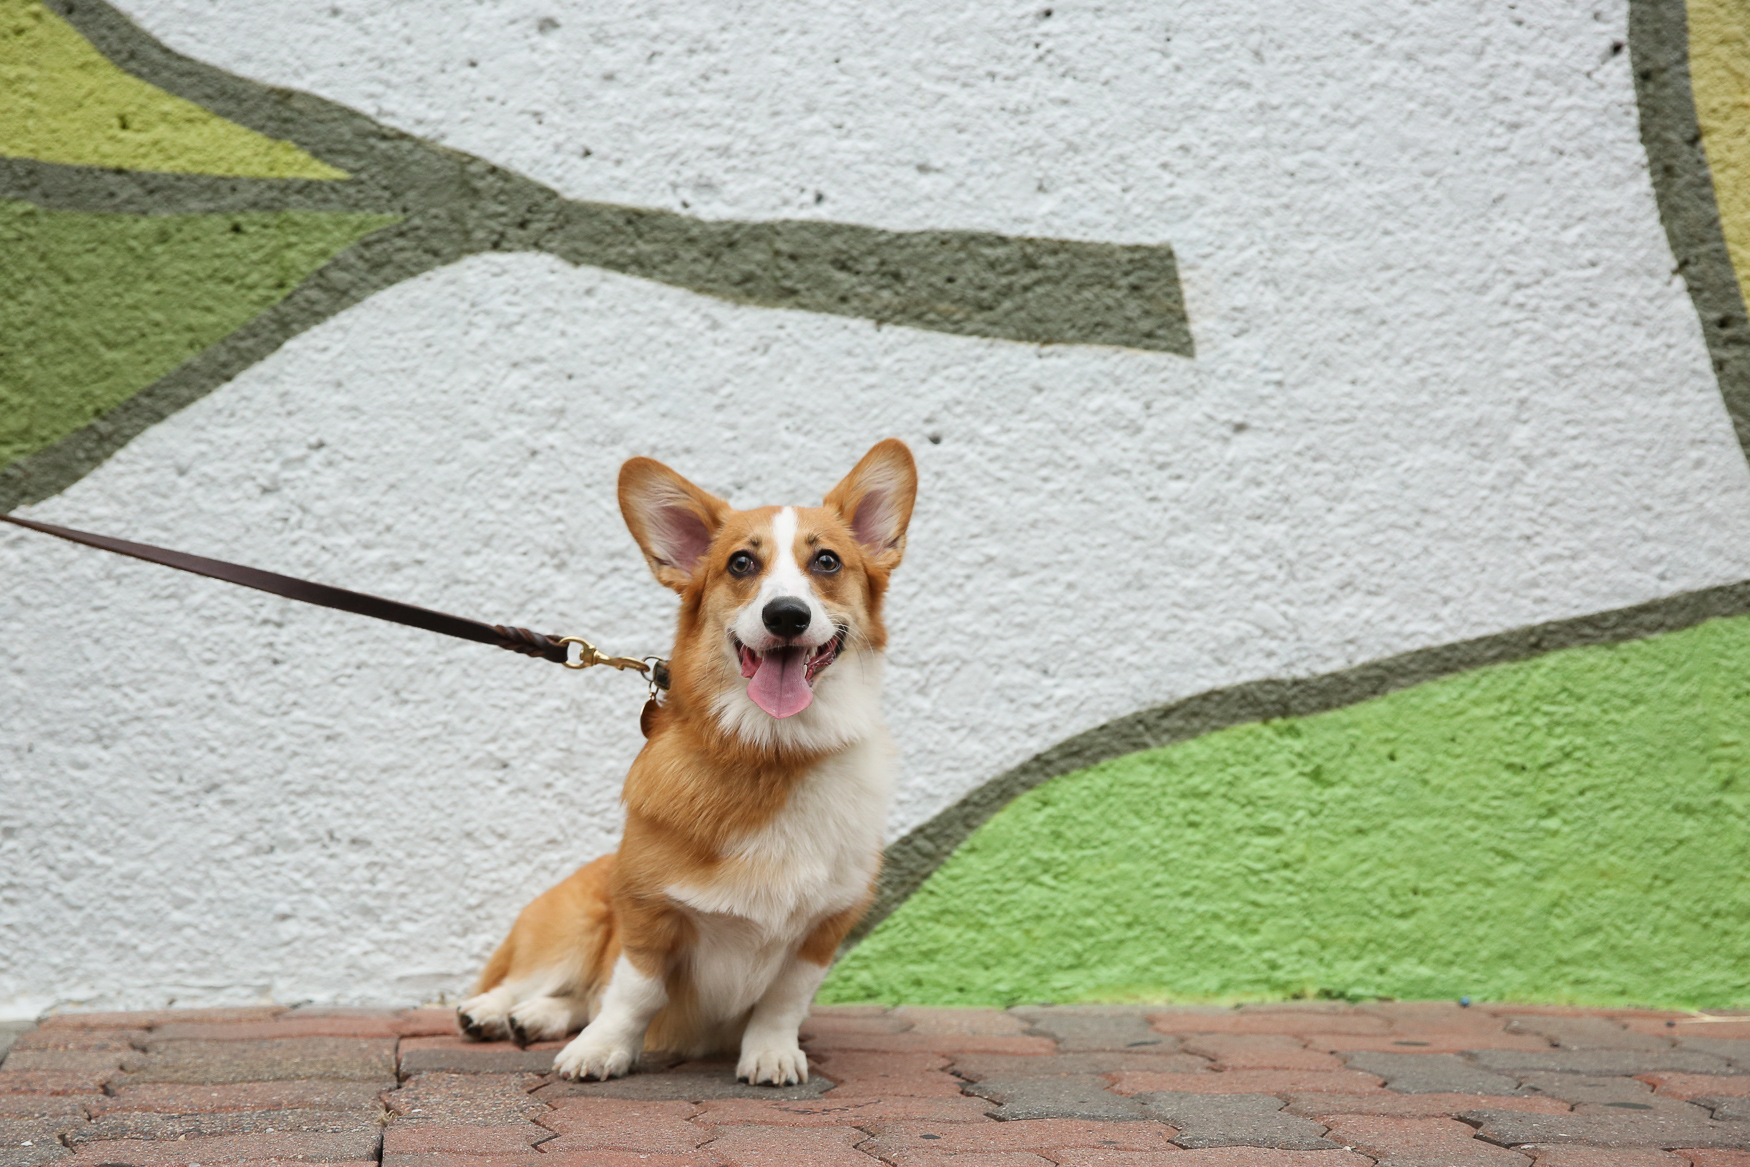 "Meet Gumbo, a 9-month-old Pembroke Welsh Corgi who came to his family from a championship breeder in Fairfax. His life motto is ""chasing balls and breaking hearts in the DMV."" Gumbo LOVES finding sticks to bring in as trophies from his walks, is great at playing fetch and excellent at catching his toys in mid-air. One of his pawrents' favorite memories with Gumbo was his first beach trip. They expected he would be cautious of the water and instead he jumped right in and rode the waves! You can follow Gumbo's adventures on his Instagram account: @therealgumbo. If you're interested in having your pup featured, drop us a line at aandrade@dcrefined.com (Amanda Andrade-Rhoades/DC Refined)"